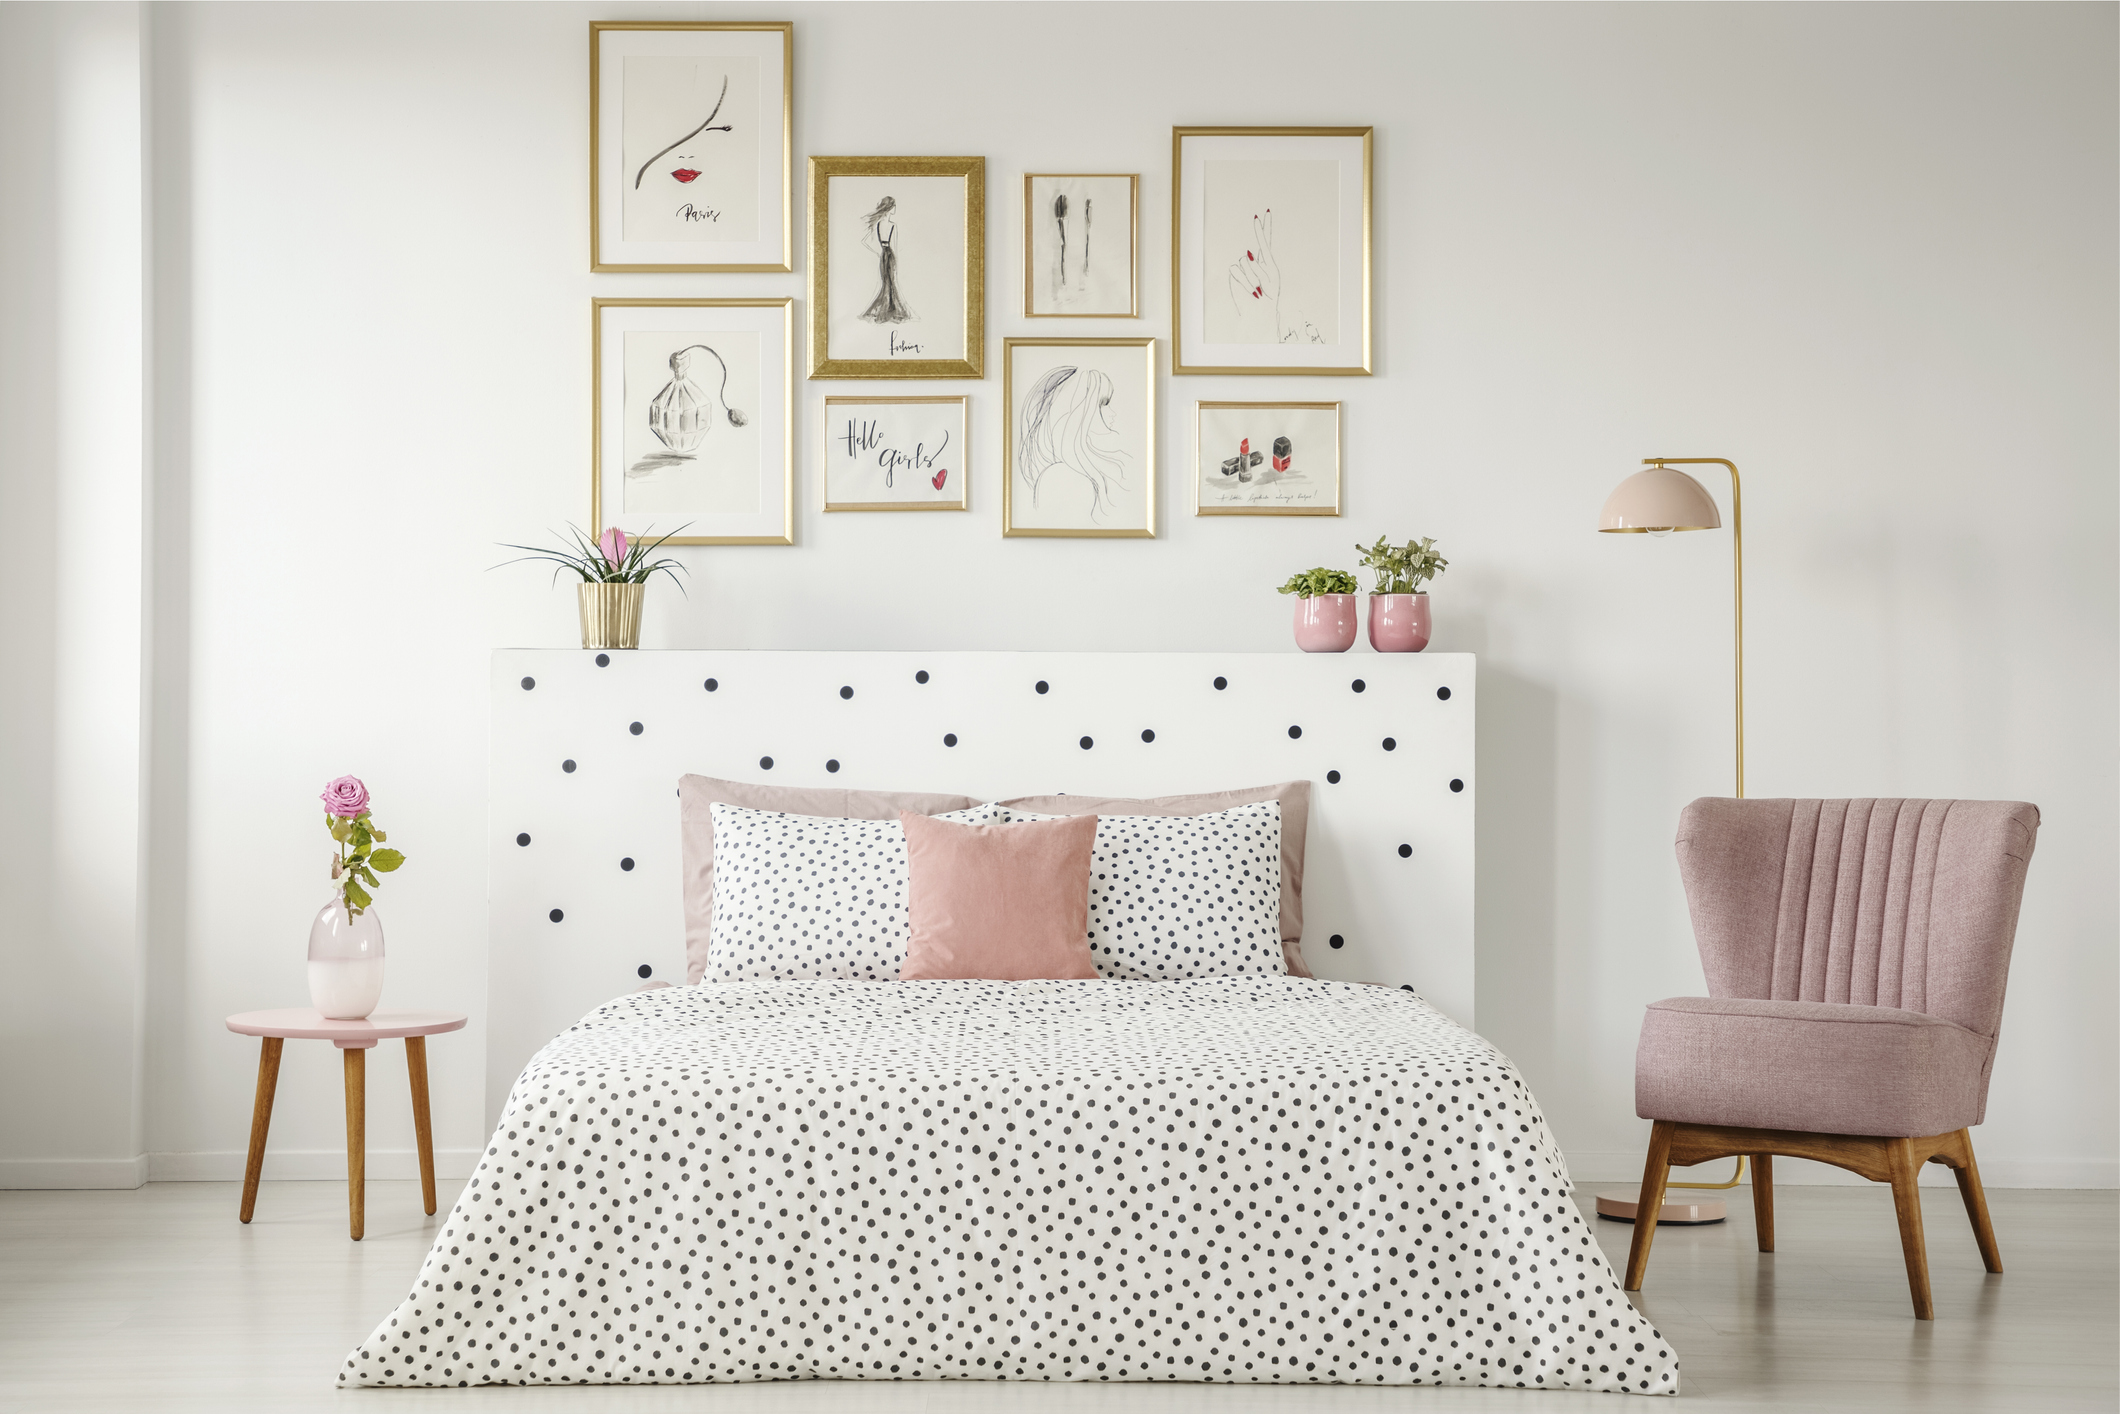 clean bedroom with pink accents